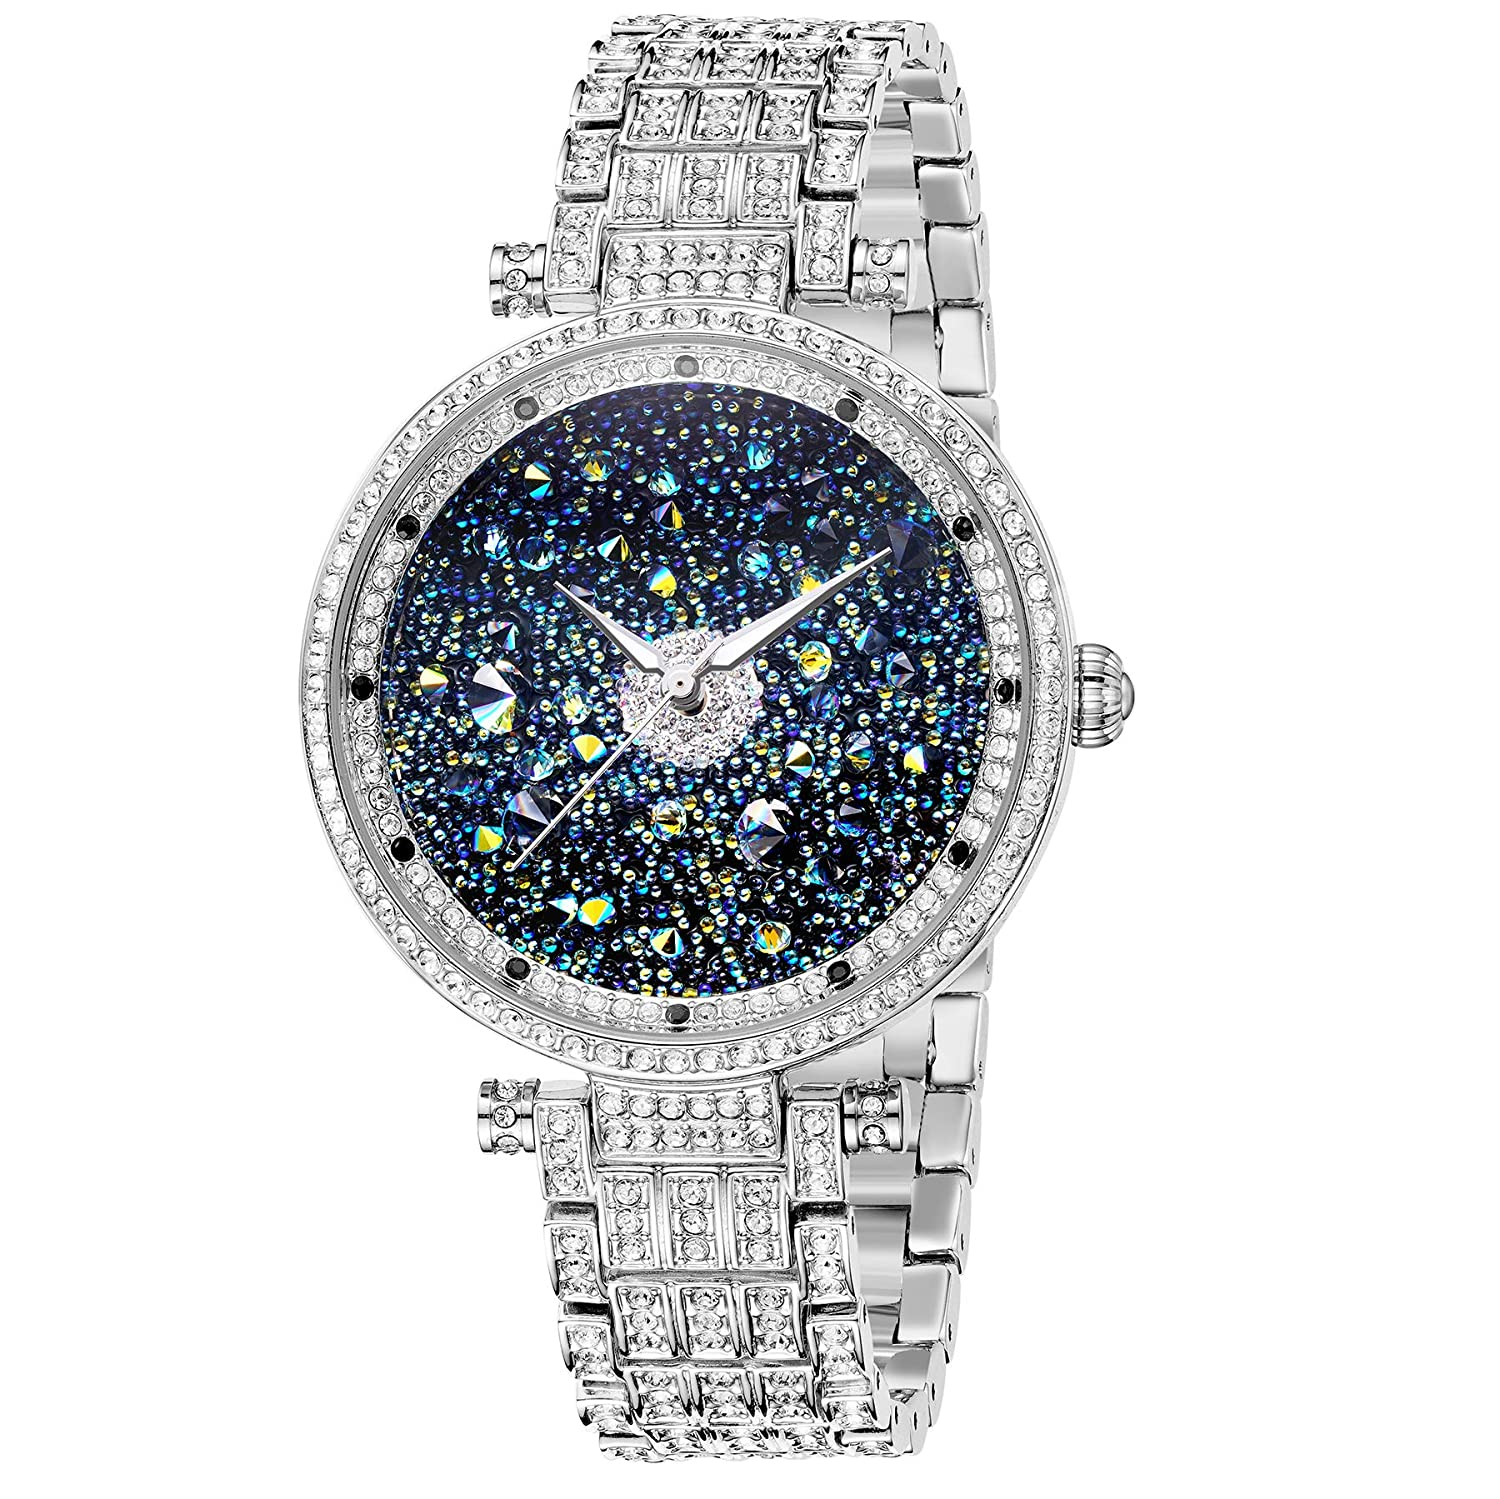 f2c1573a76b8 Amazon.com  ♥ Gift for Mother ♥ Crystal Watches for Women Silver ...